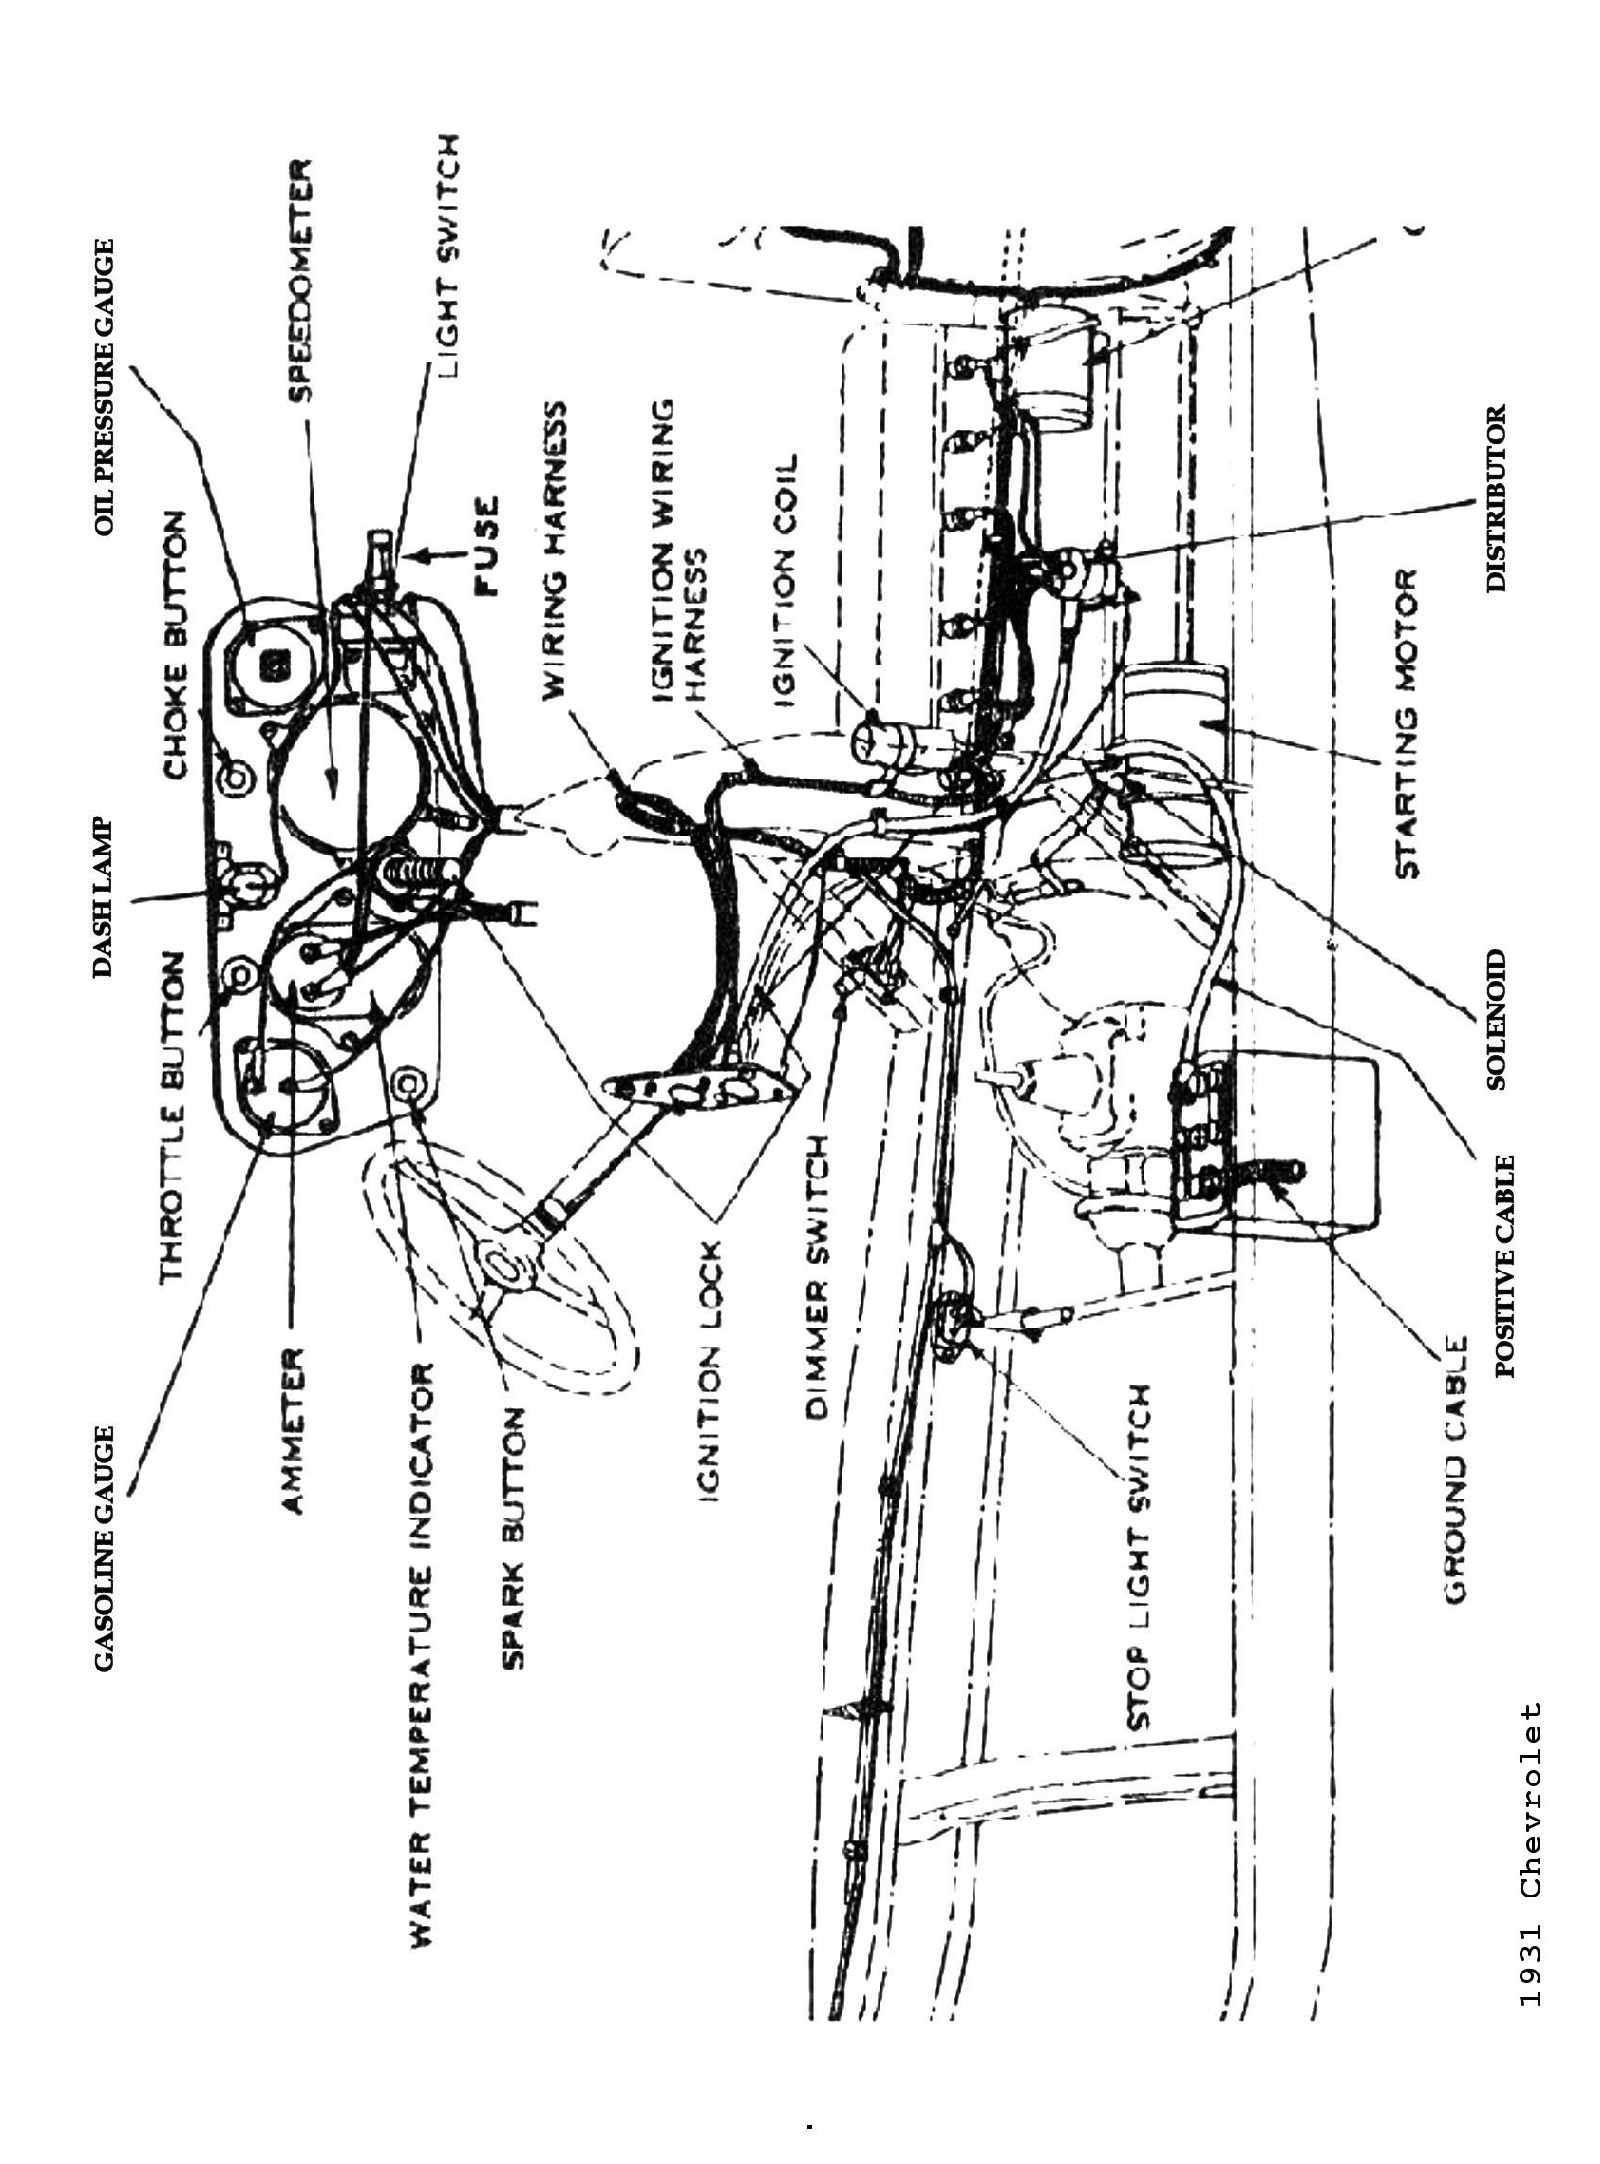 1929 ford roadster wiring diagram 1929 model a pick up wiring diagram | wiring library #13